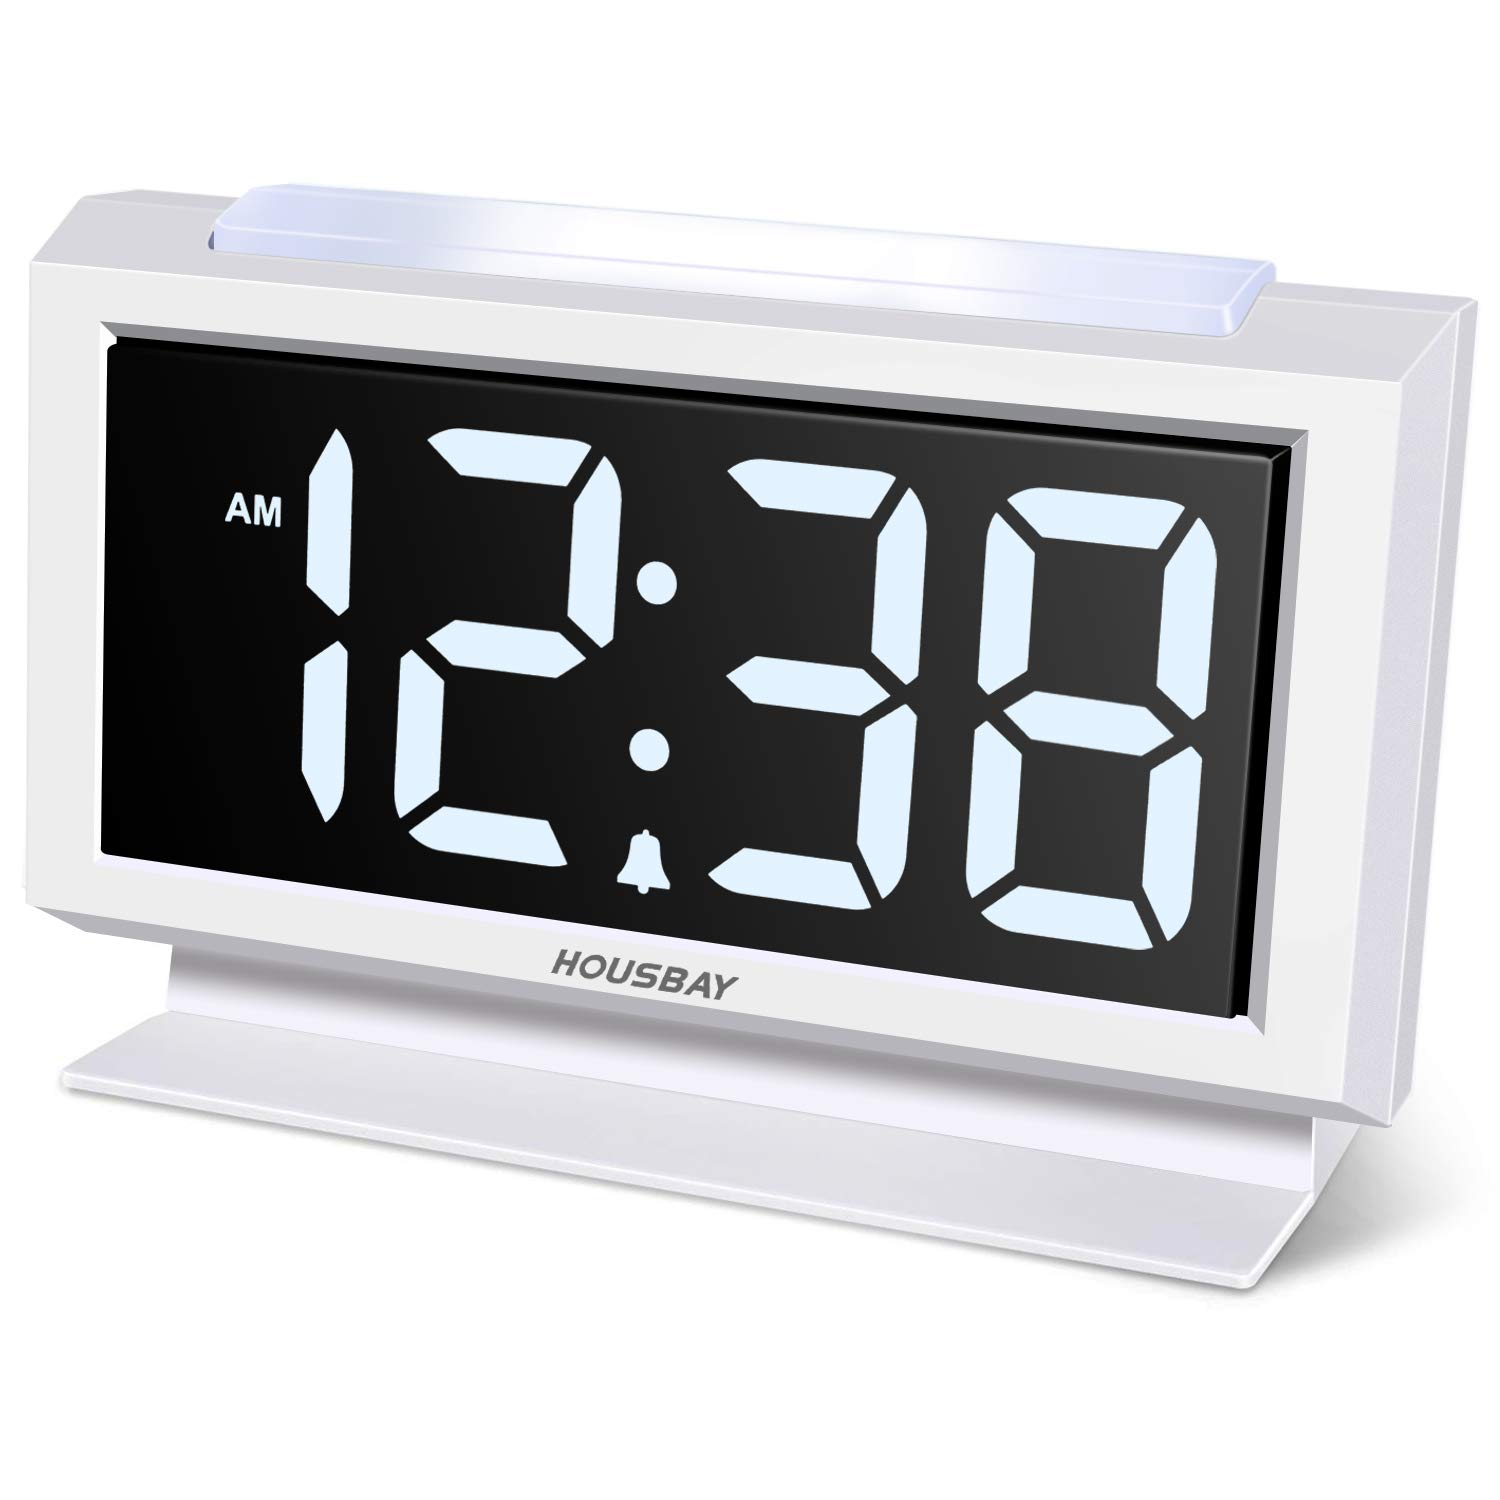 Housbay Digital Alarm Clocks for Bedrooms - Handy Night Light, Large Numbers with Display Dimmer, Dual USB Chargers, 12/24hr, Outlets Powered Compact Clock for Nightstand, Desk, Shelf